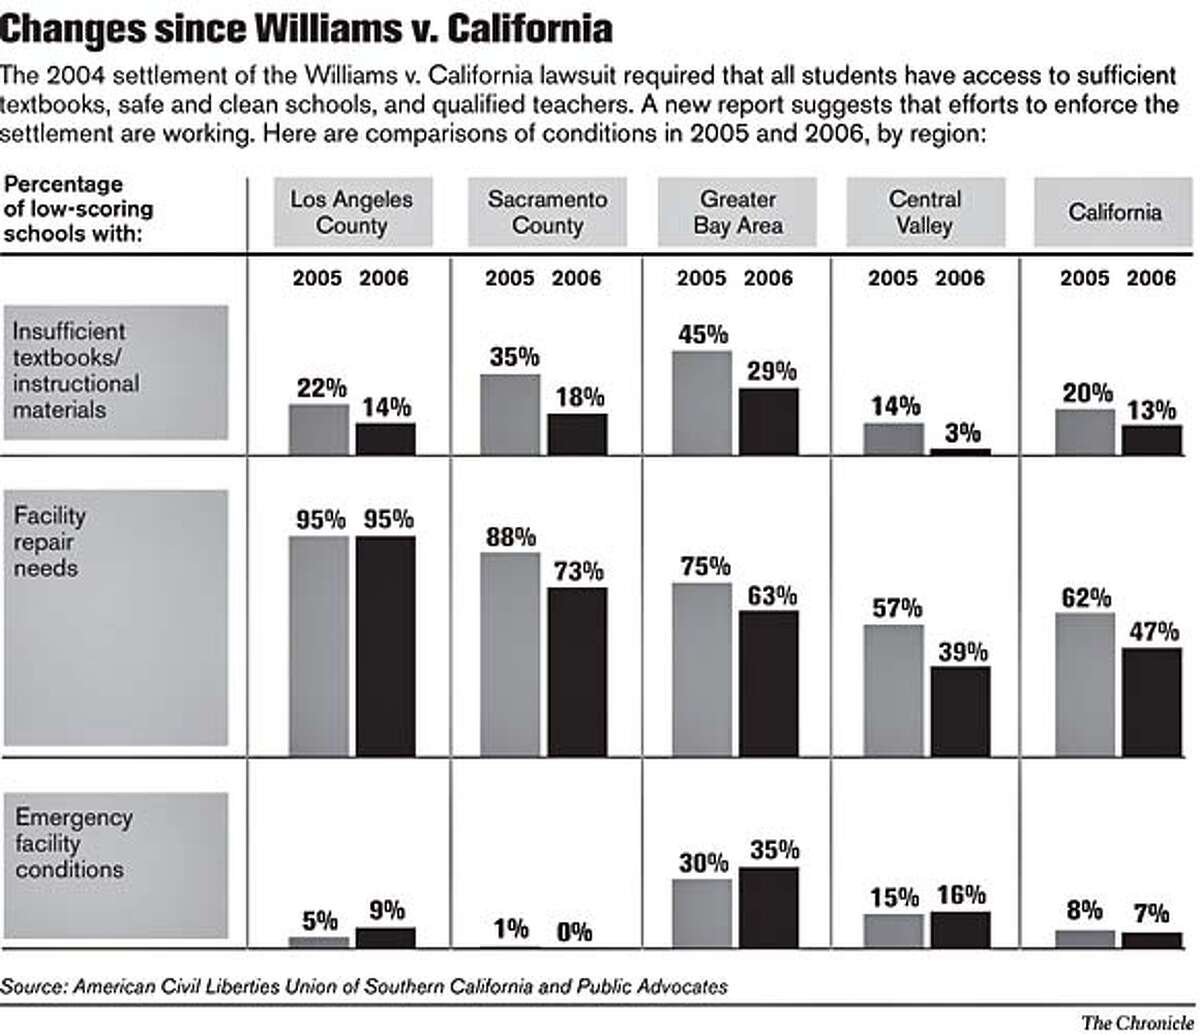 Changes Since Williams v. California. Chronicle Graphic